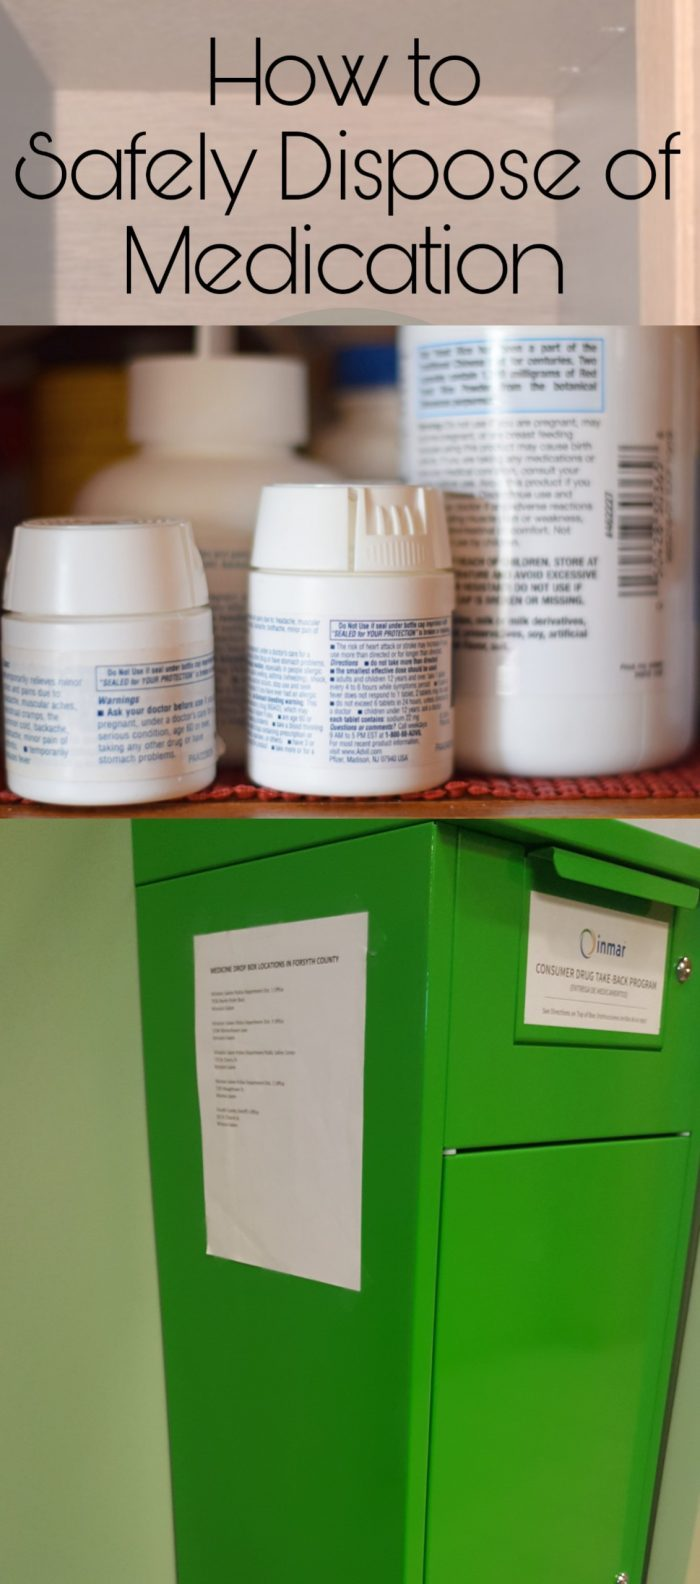 How to Safely Dispose of Medication AD